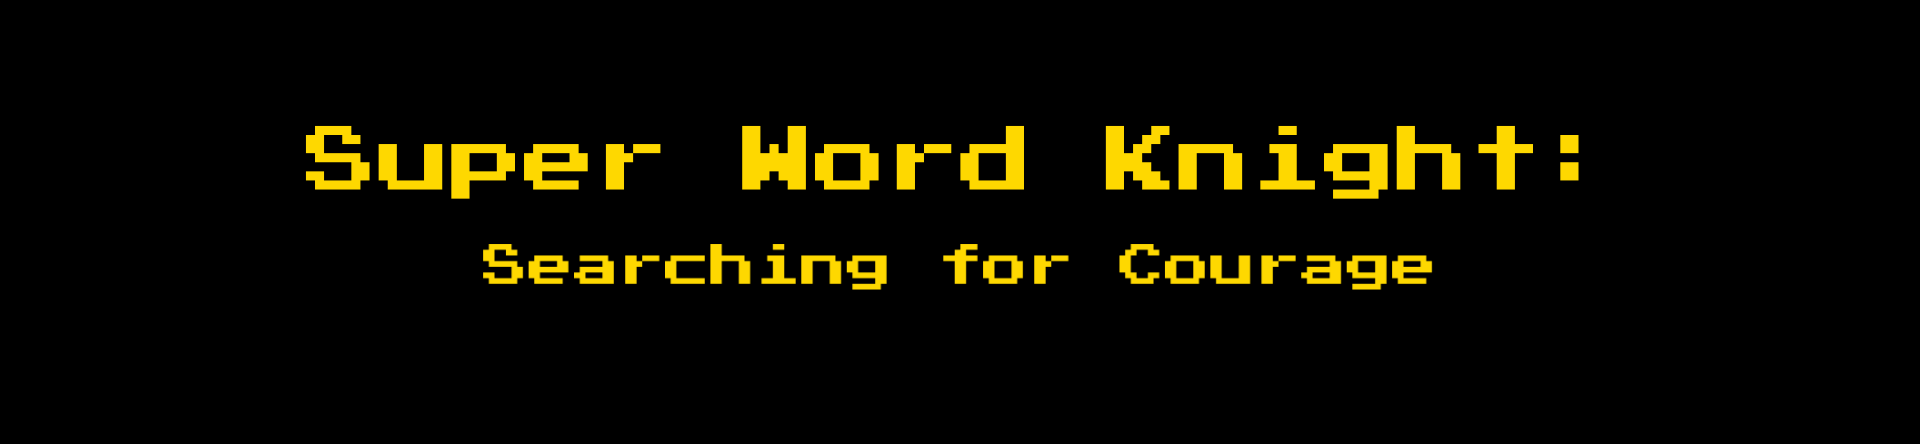 Super Word Knight: Searching for Courage